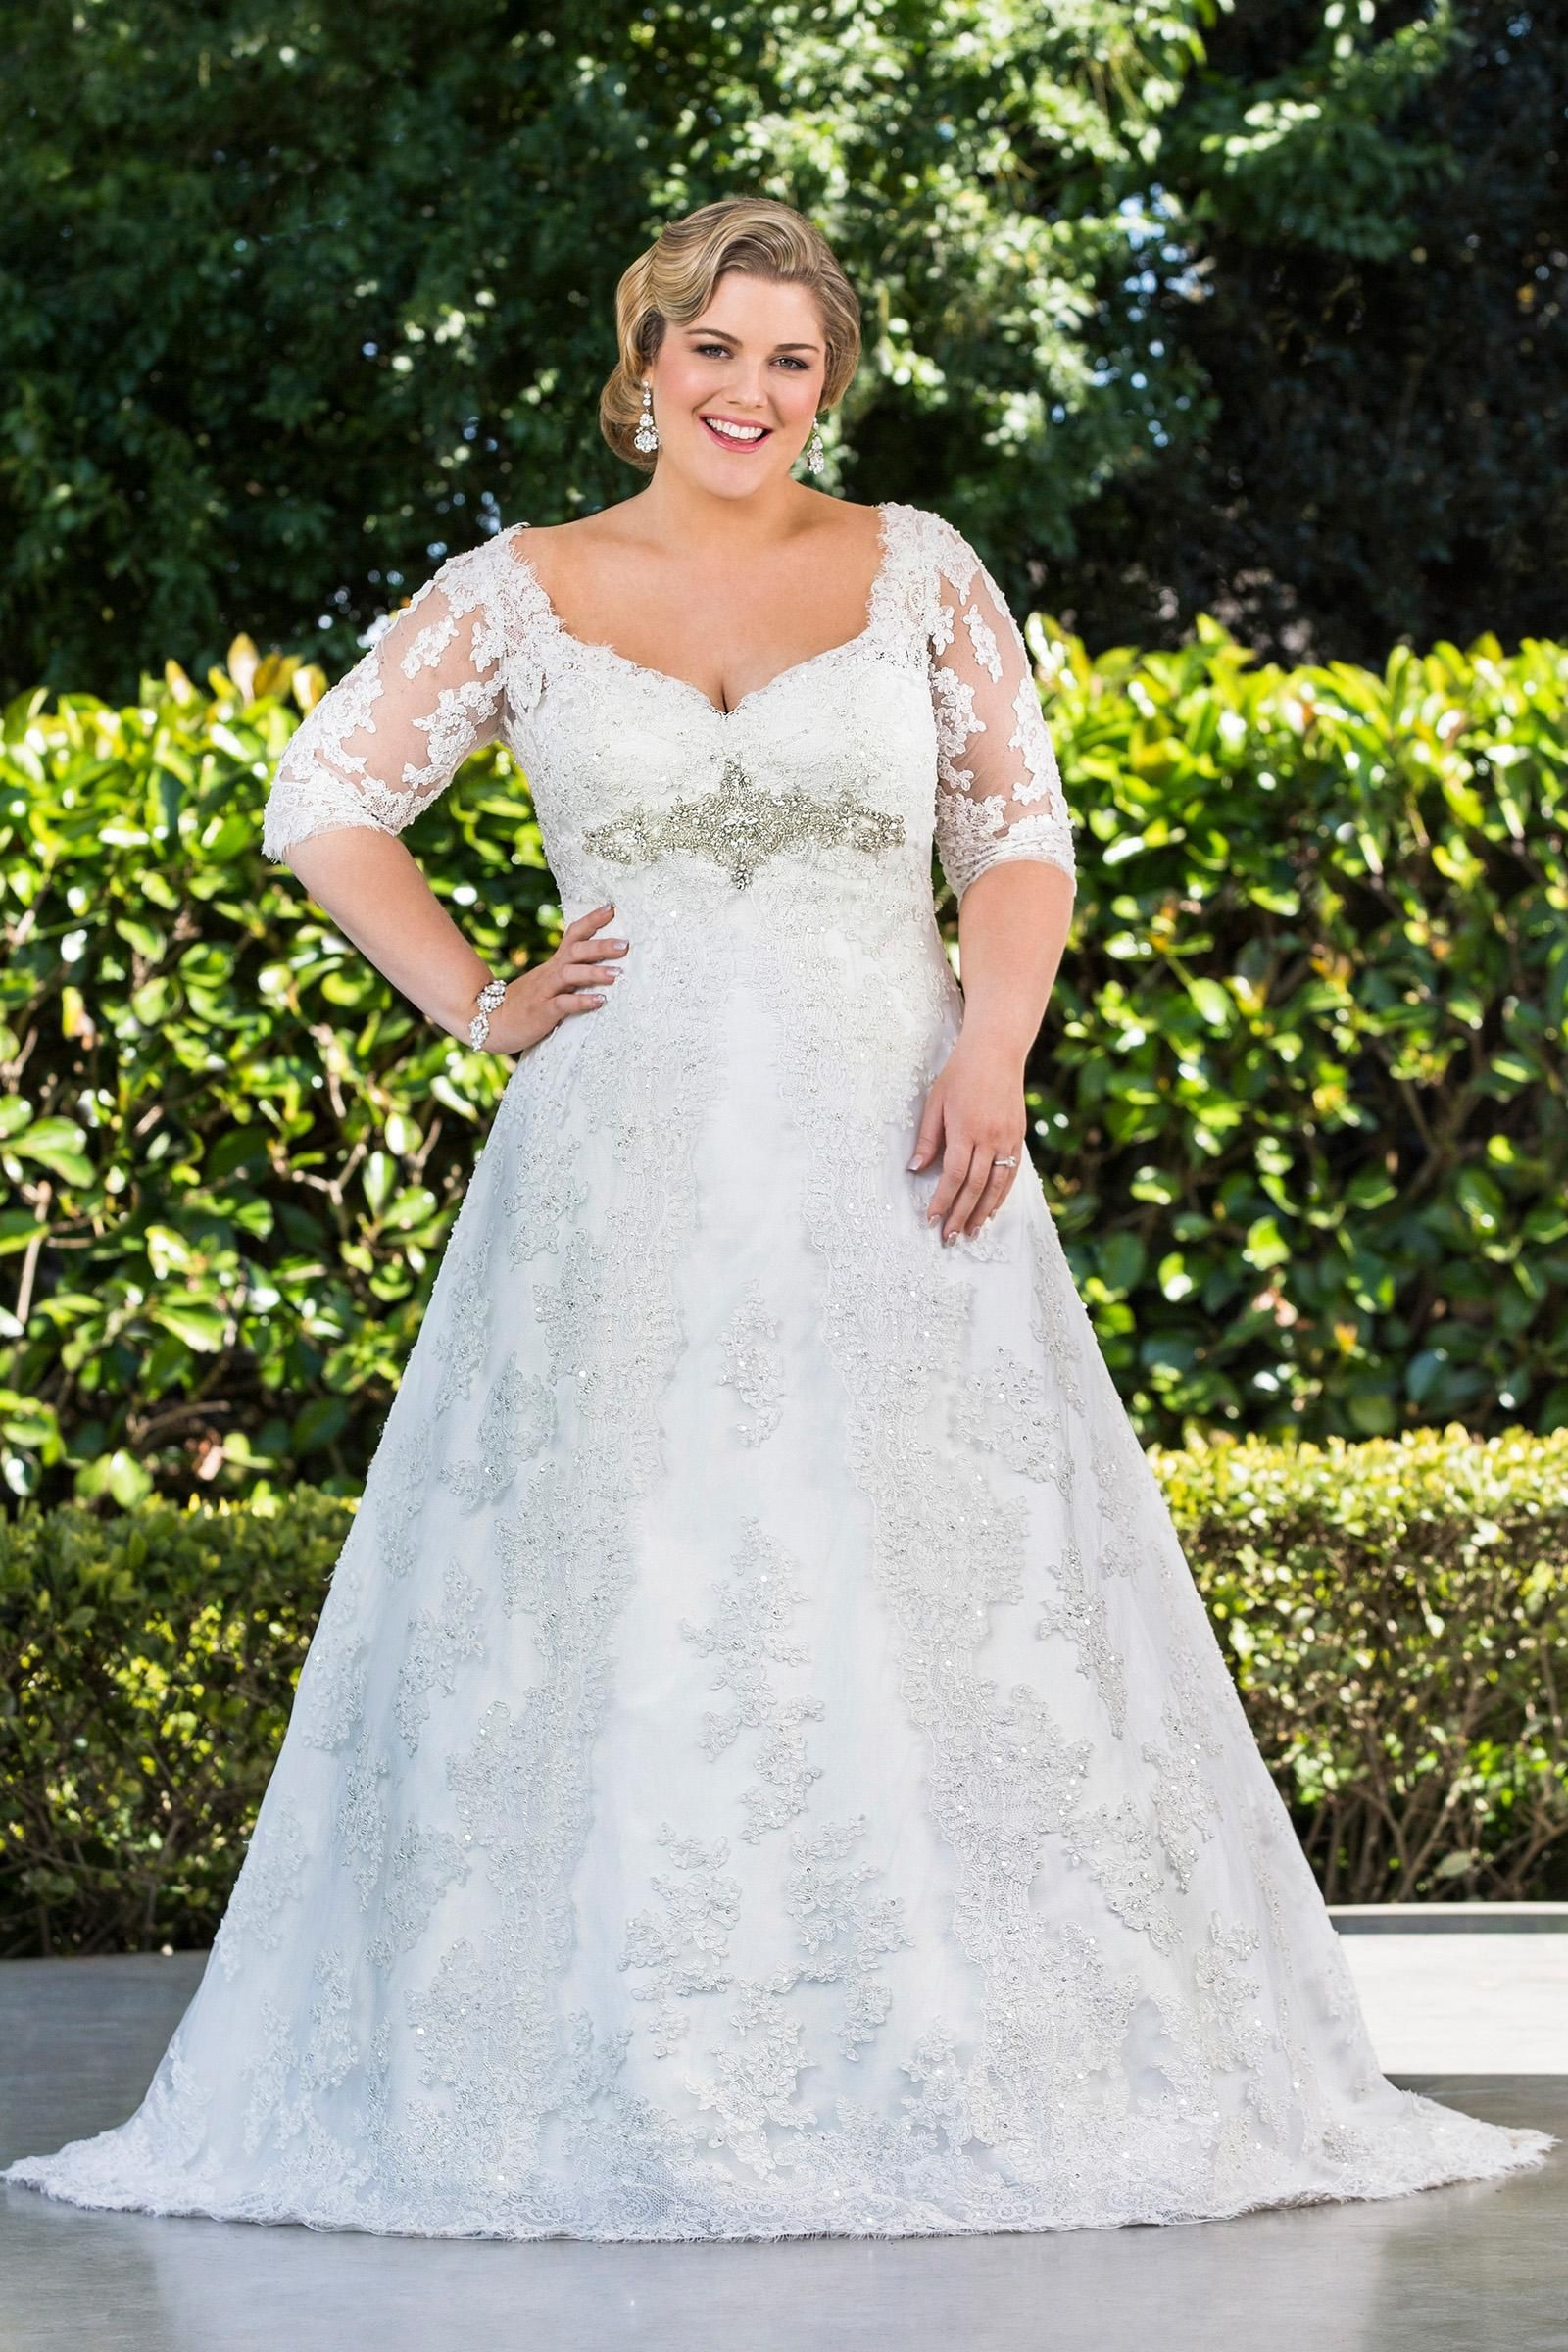 Discount Plus Size A Line Lace Wedding Dresses With Half Sleeves 2019 New Arrival Sheer Long Princess Bridal Gowns W1355 Winter Crystal Appliques Hot Wedding Dr Plus Size Wedding Dresses With